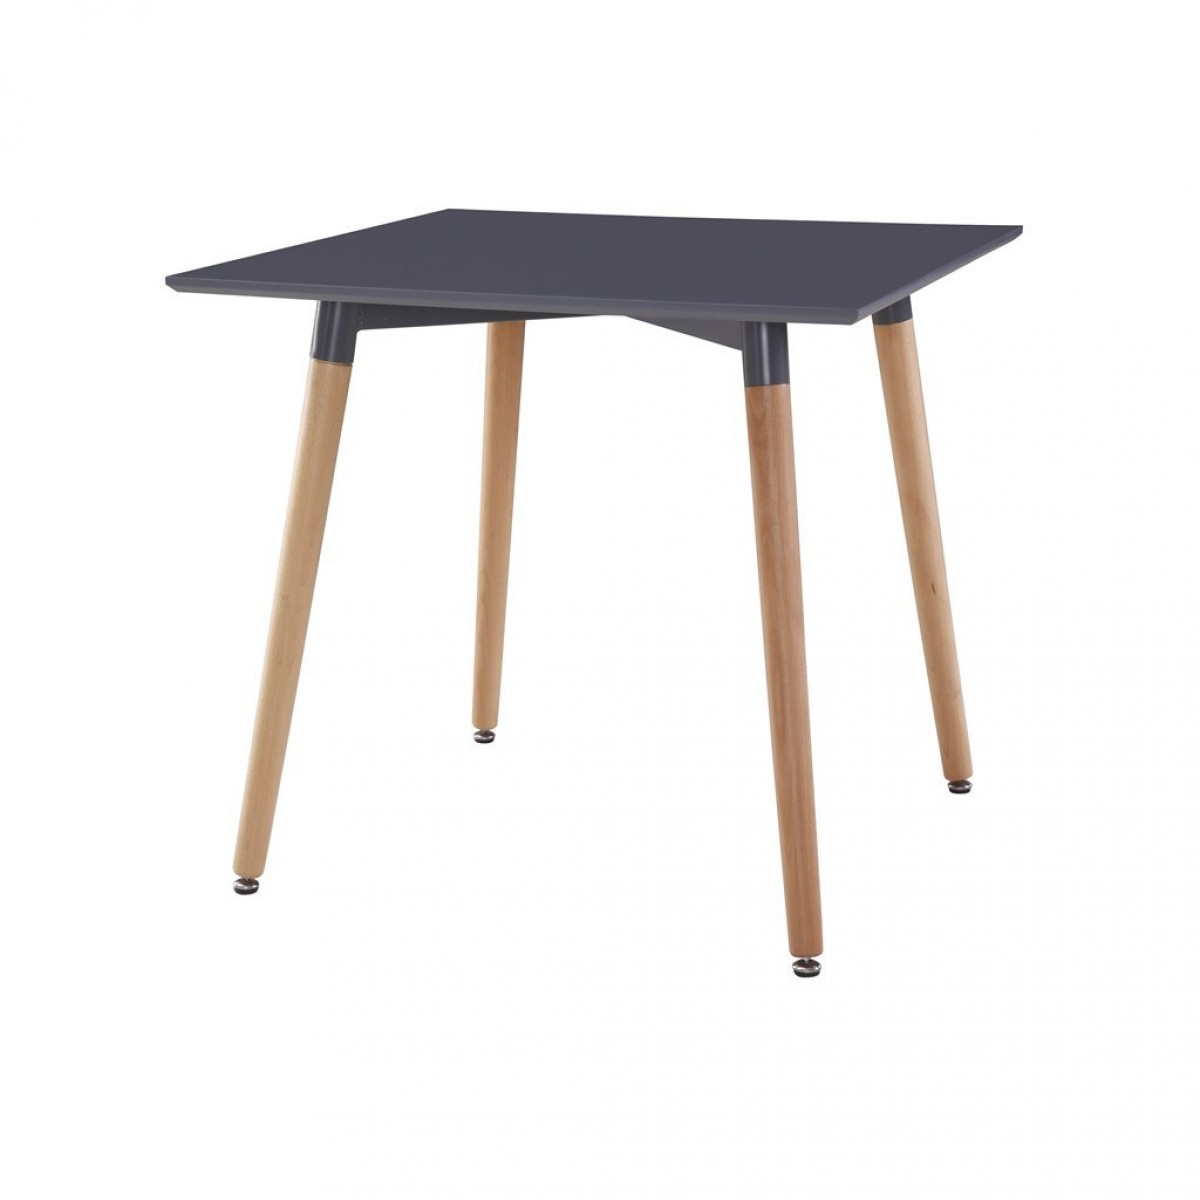 Table carr e scandinave grise les douces nuits de ma linge de maison - Table carree scandinave ...